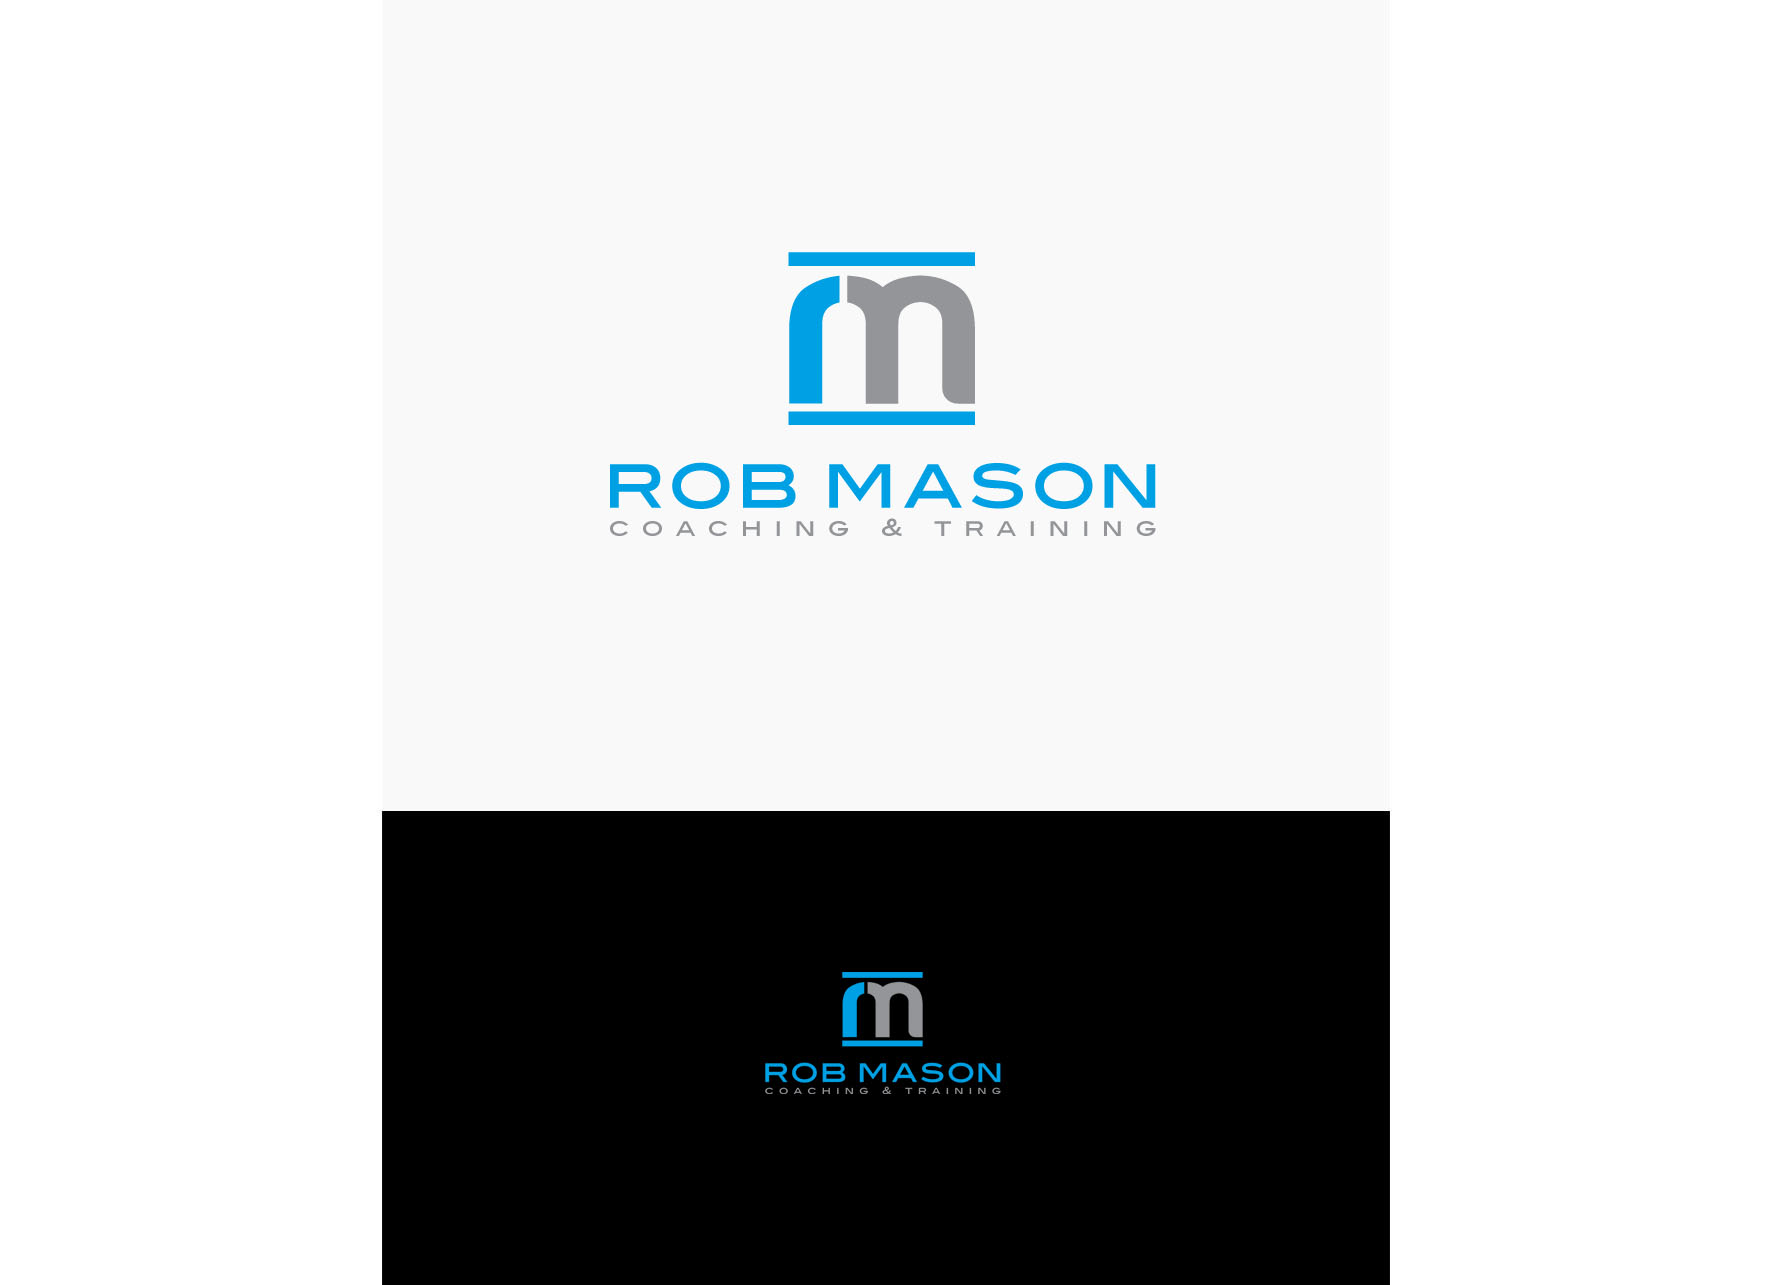 Logo Design by tanganpanas - Entry No. 128 in the Logo Design Contest New Logo Design Needed for Exciting Company Rob Mason Coaching.